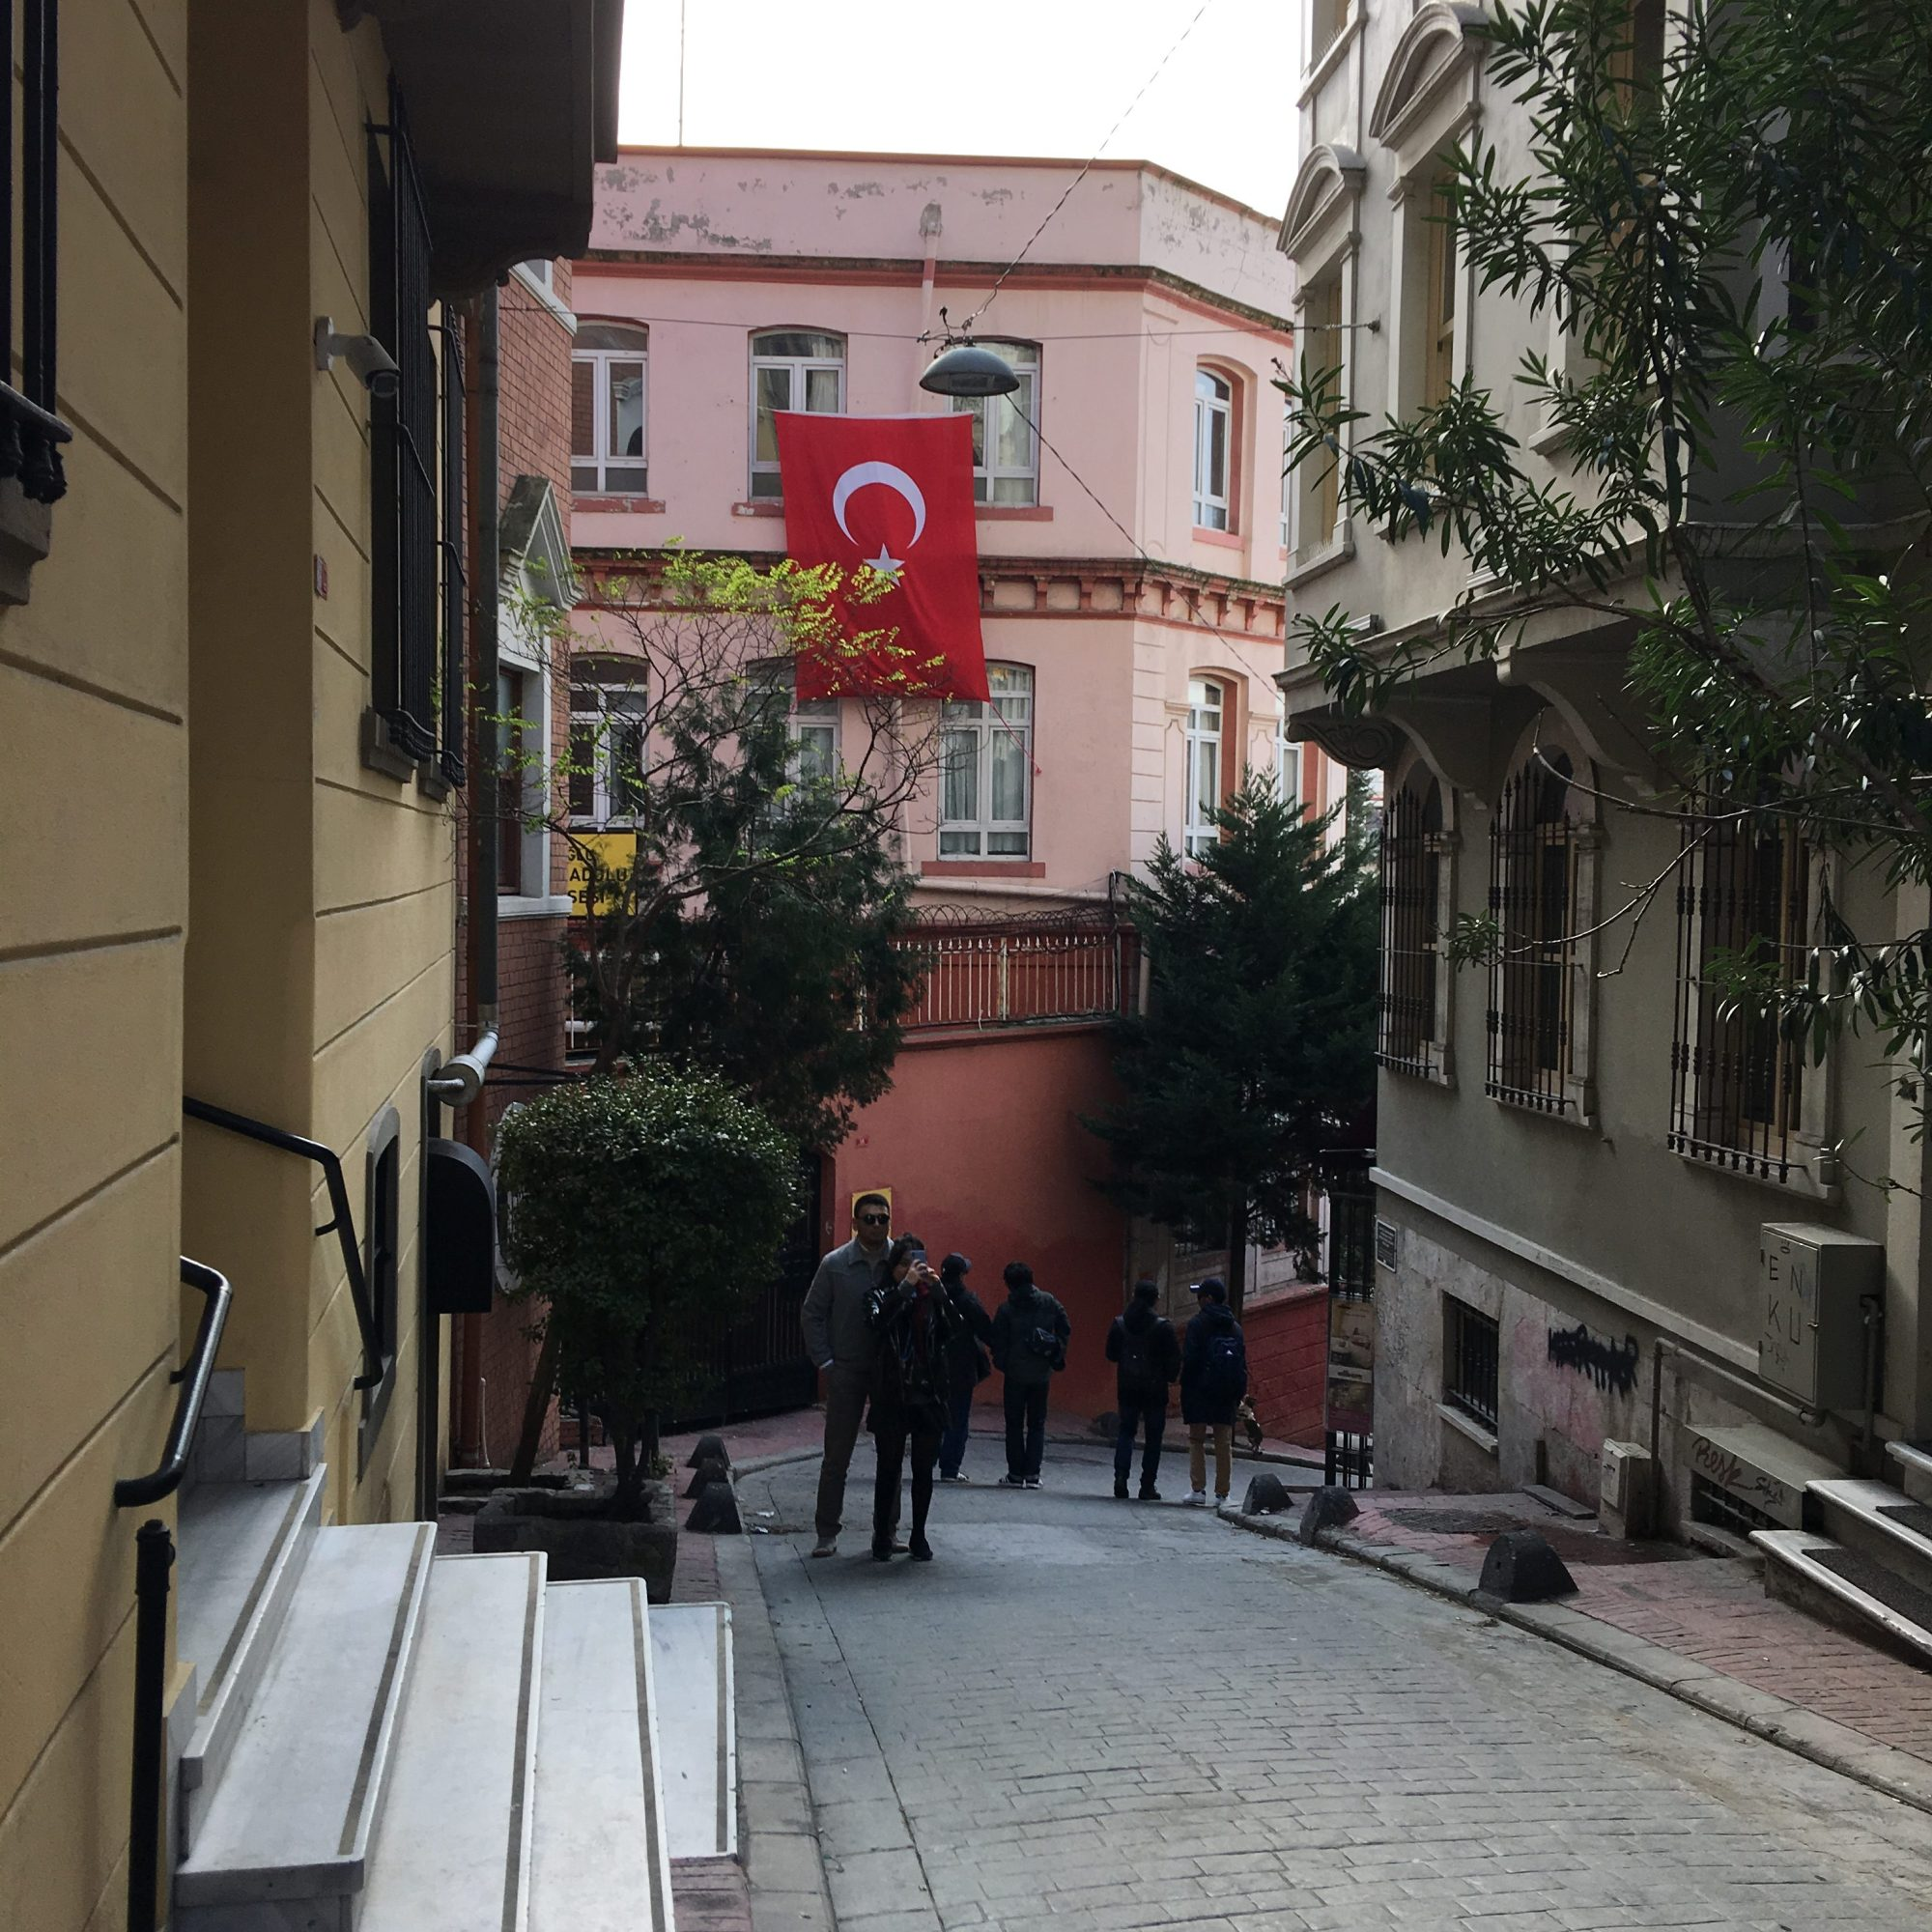 Illustrated by Sade - Street alley way in Galata of pink residential housing and the Turkish flag.